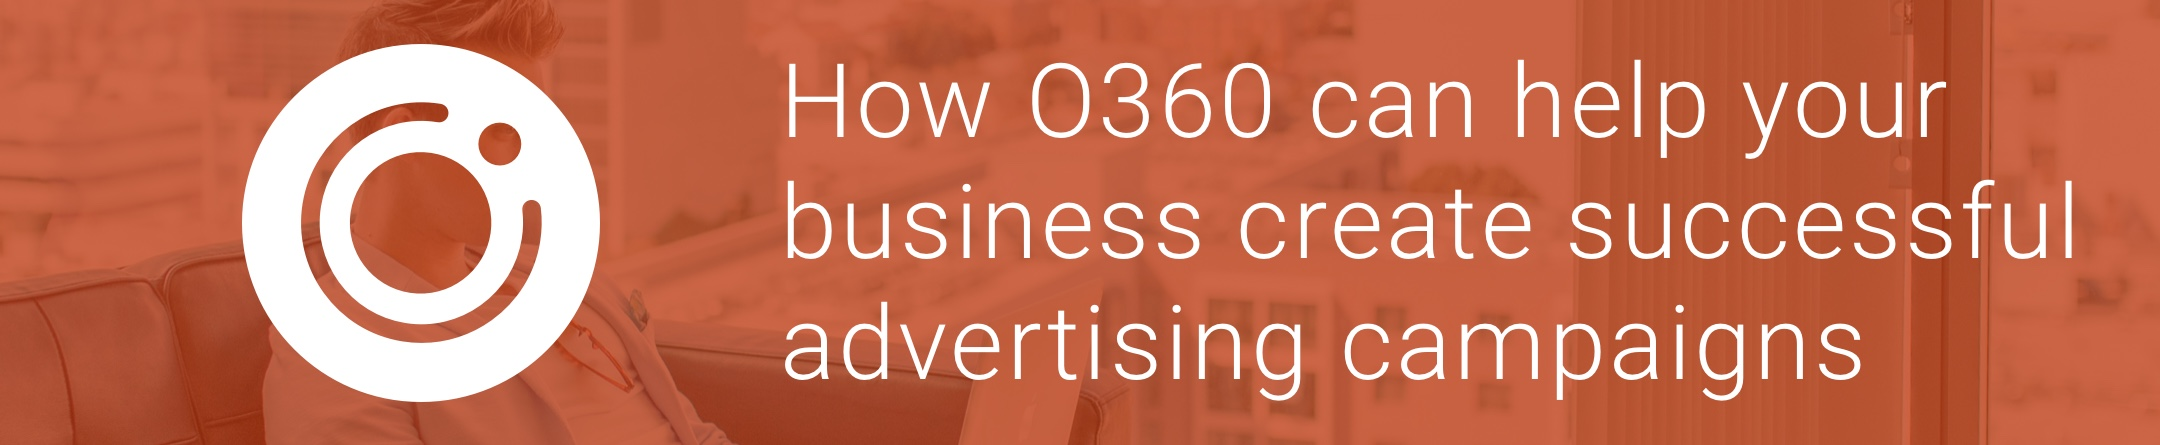 How O360 can help your business create successful advertising campaigns